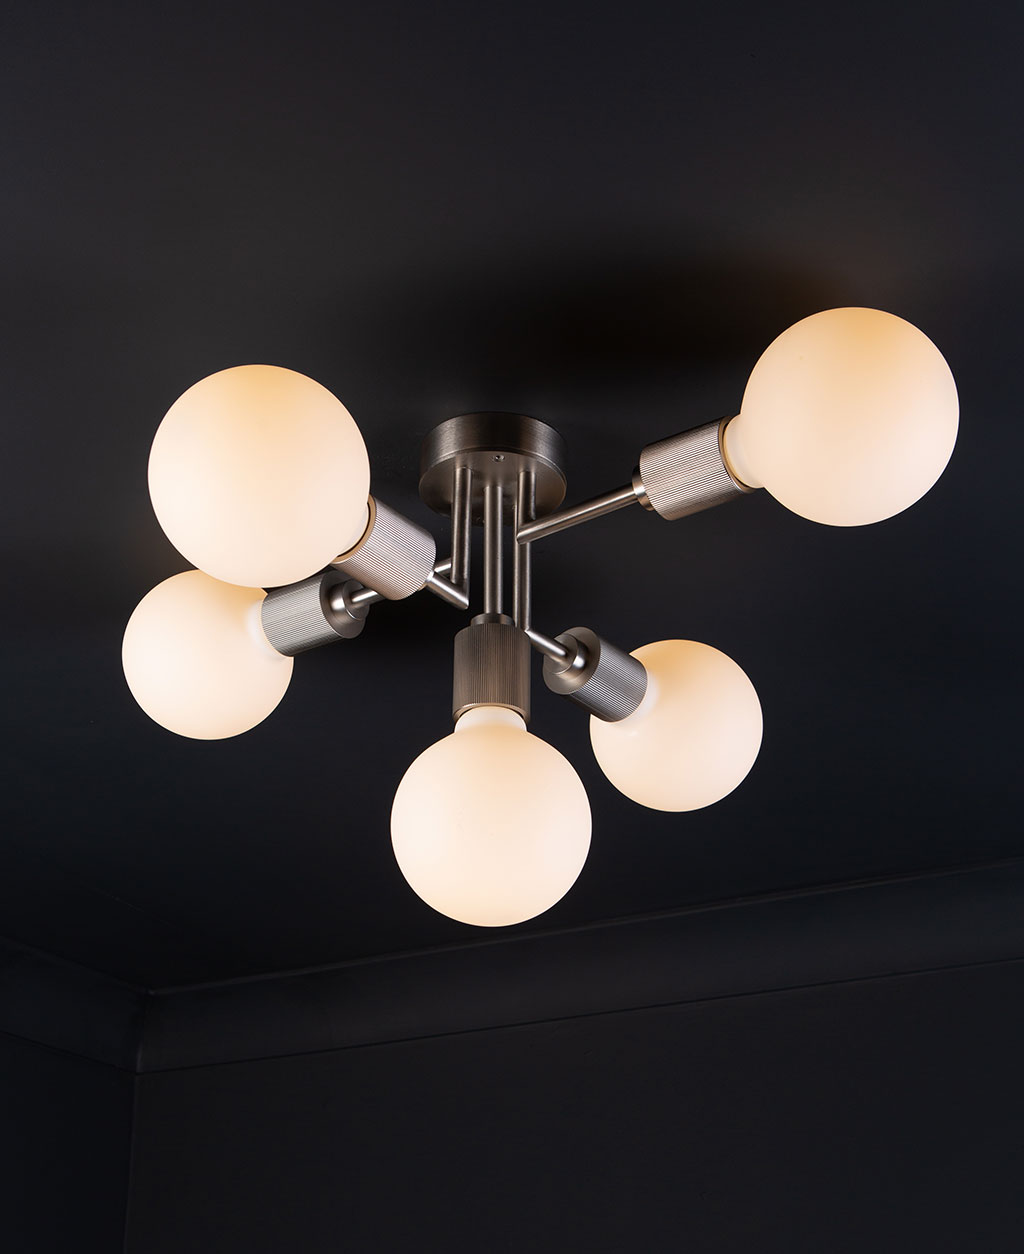 connaught flush ceiling light silver ceiling light with 5 bulbs on black ceiling.